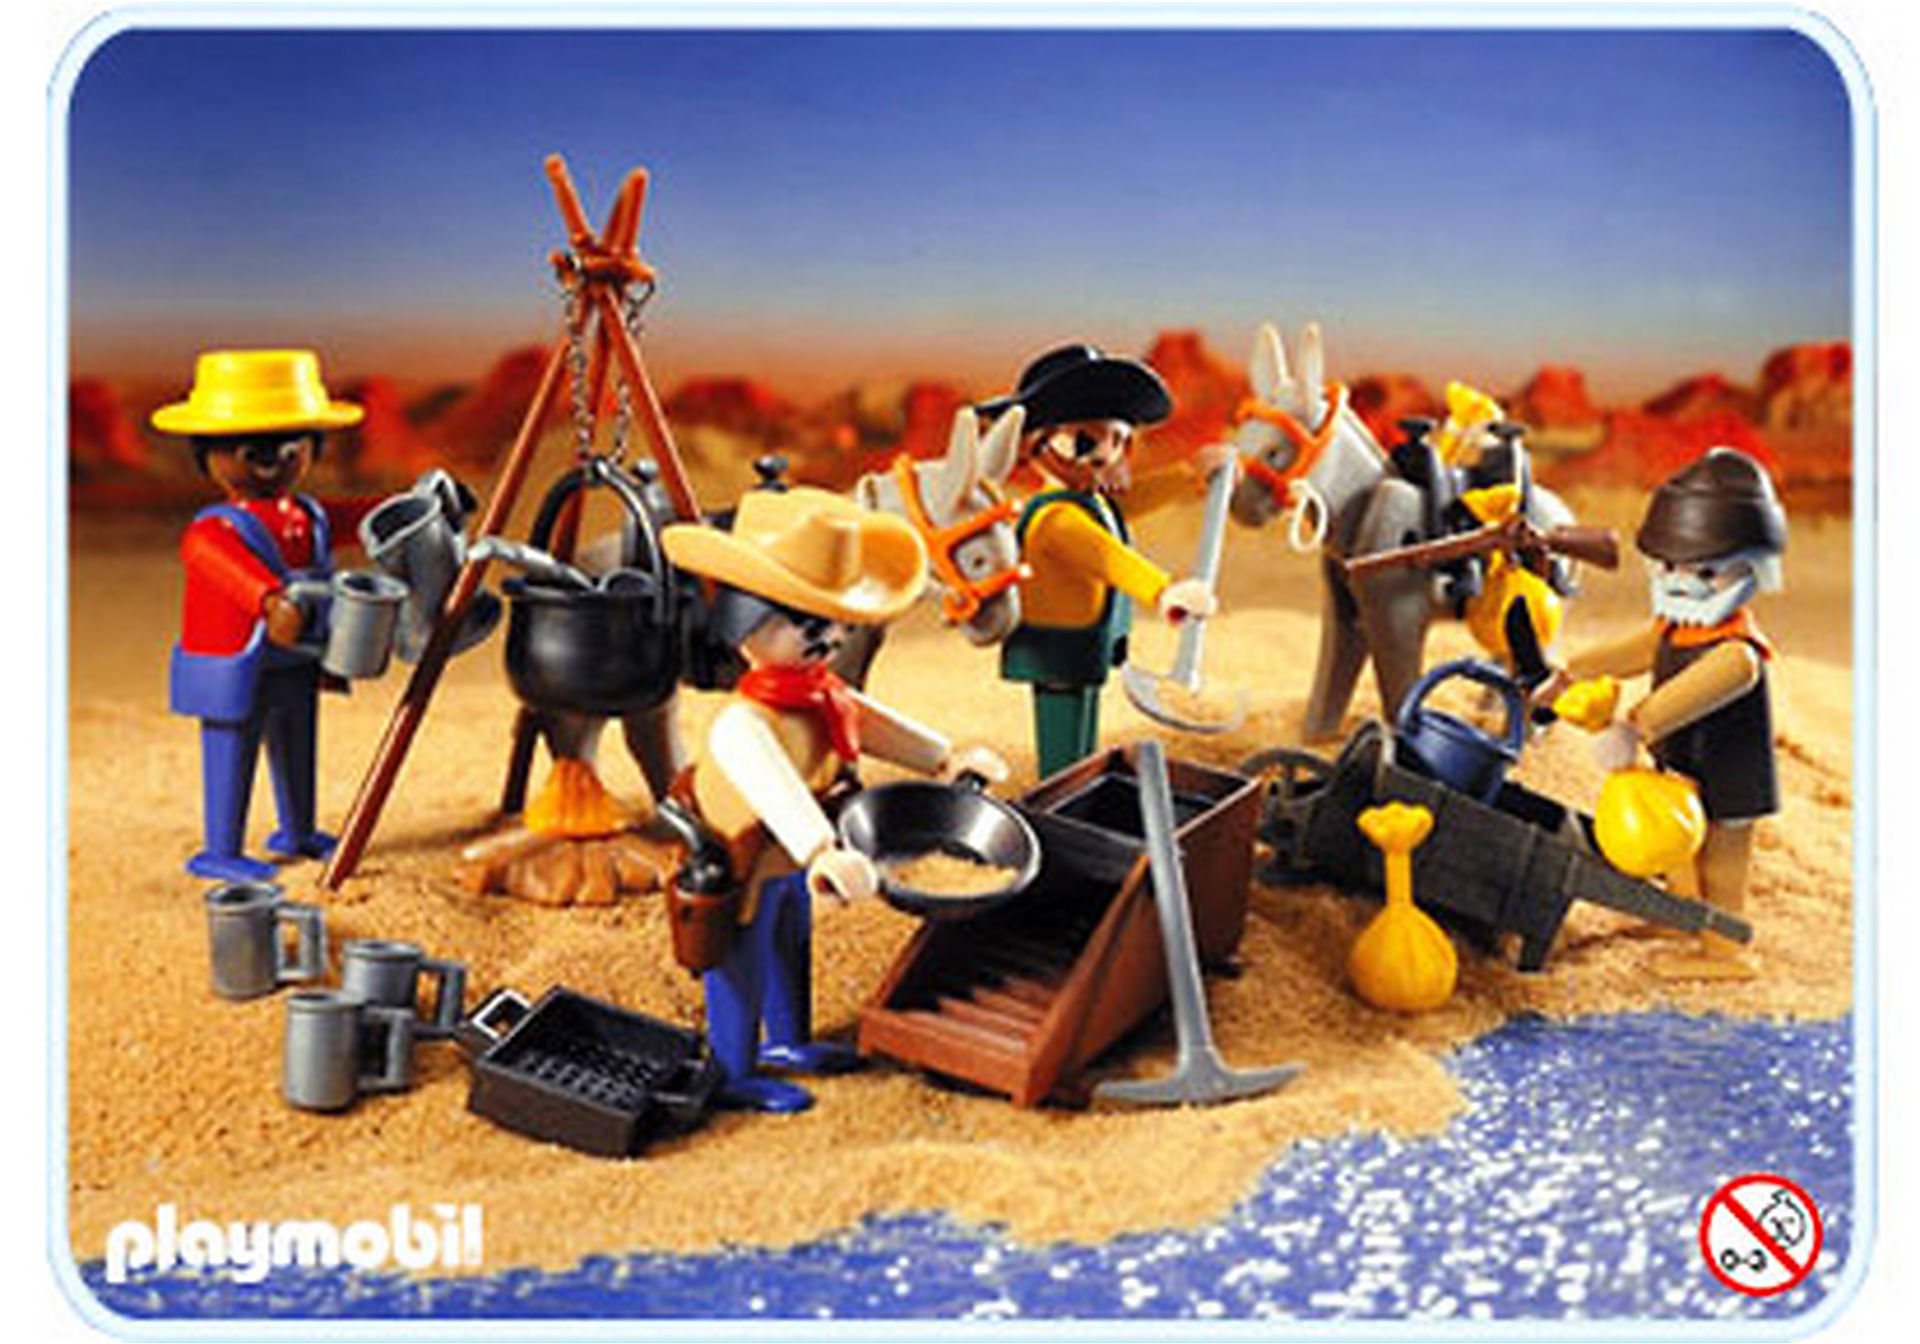 http://media.playmobil.com/i/playmobil/3747-A_product_detail/Goldwäscher